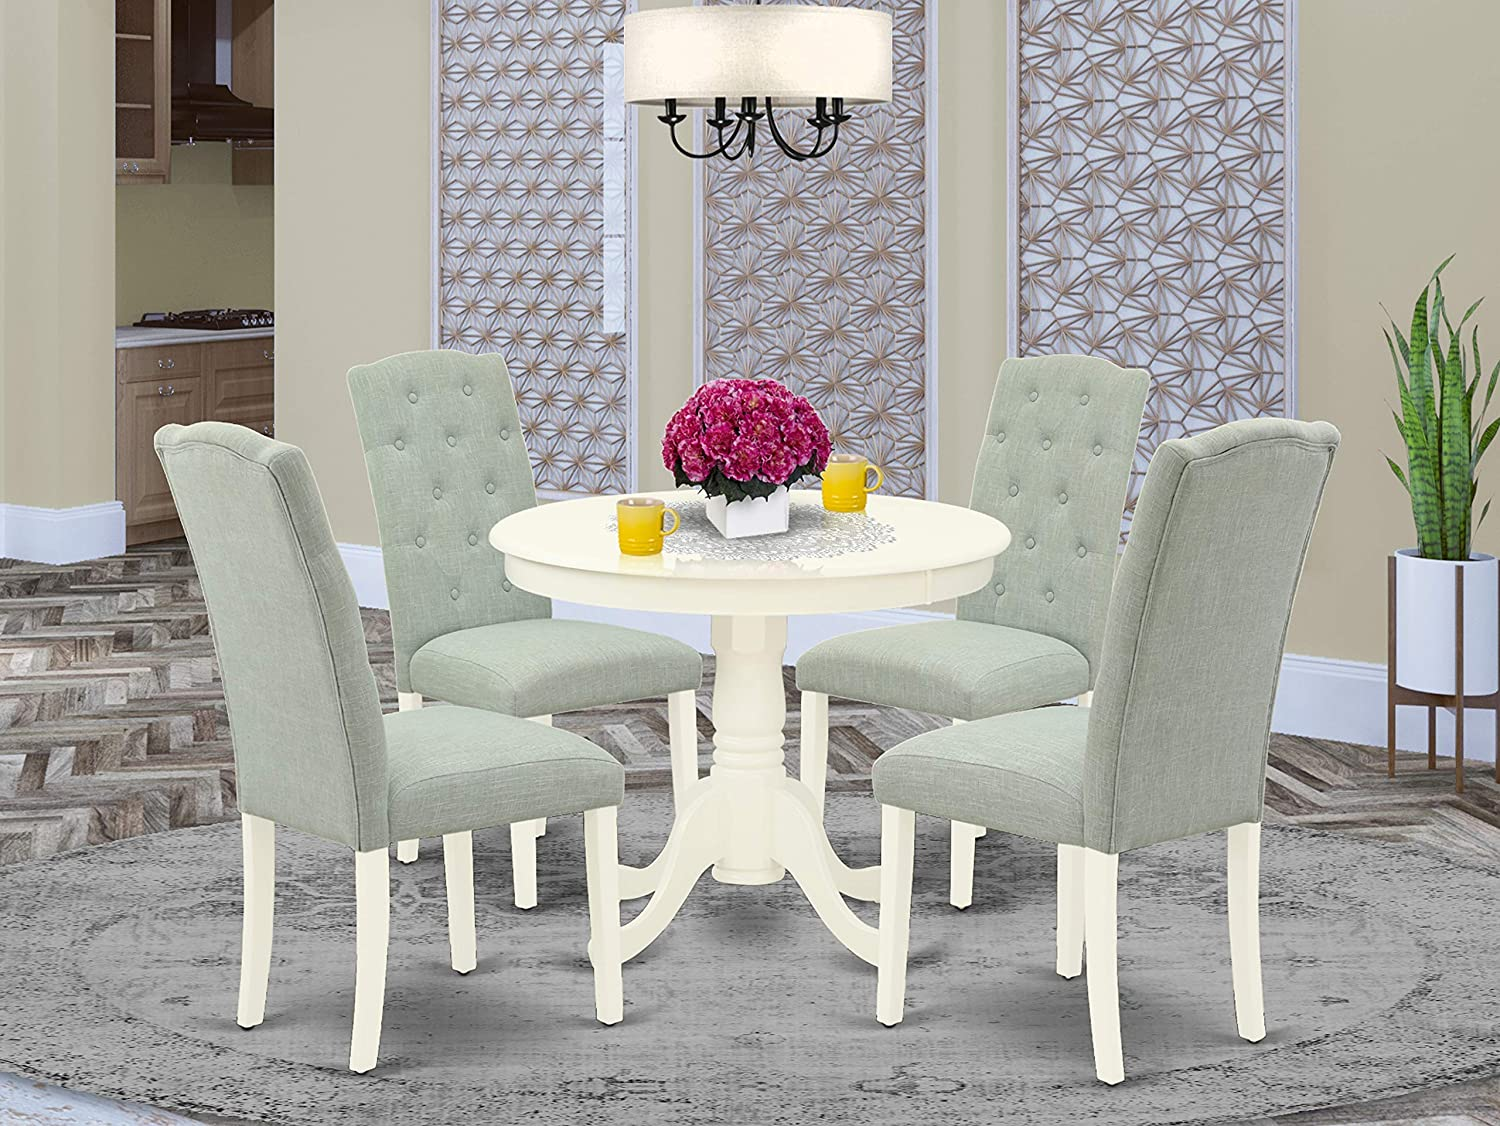 East West Furniture 9Pc Dining Set Includes a Small Round Dinette Table and  Four Parson Chairs with Baby Blue Fabric, Linen White Finish